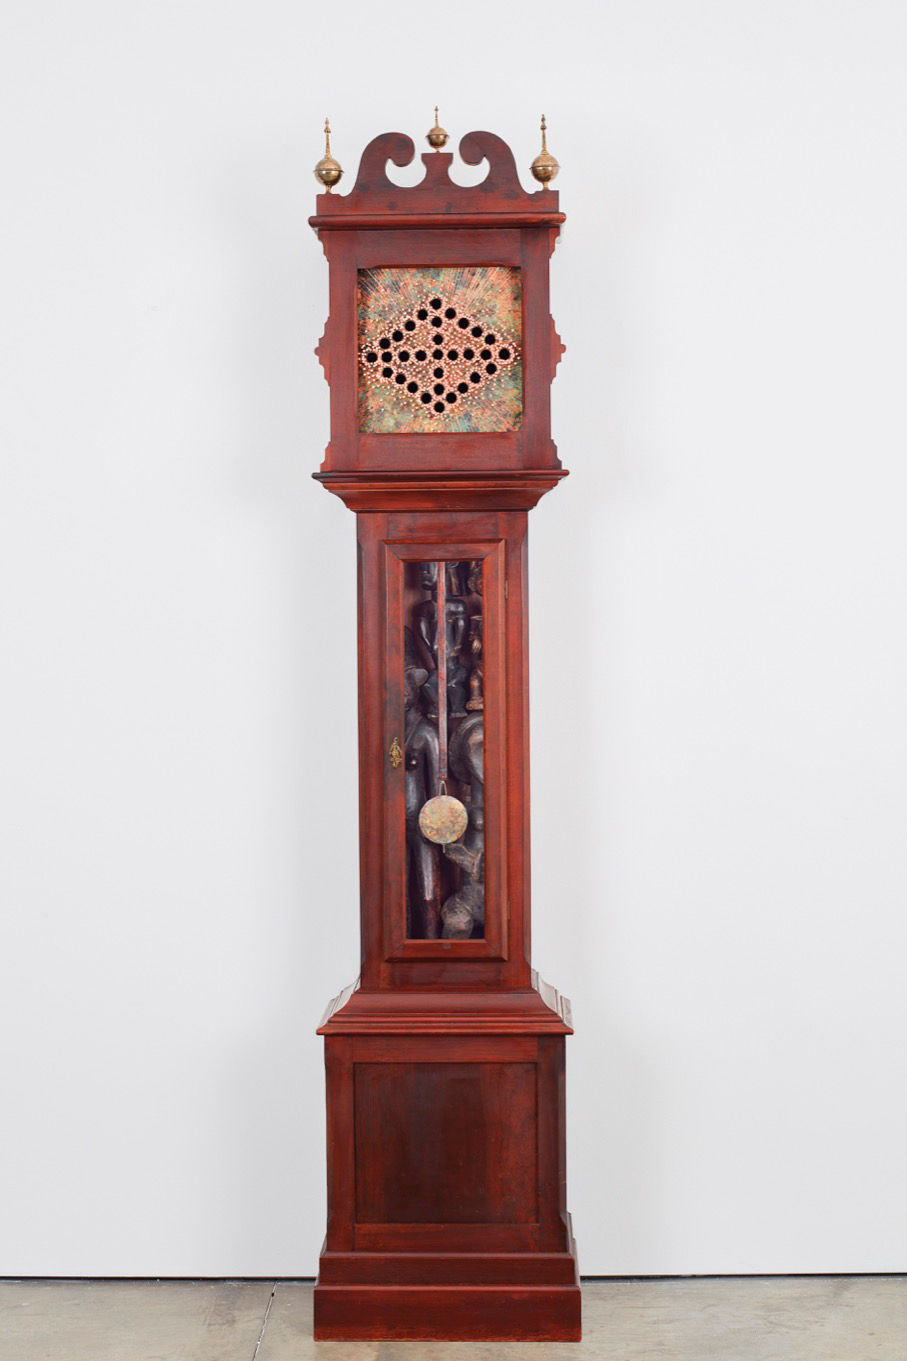 Nari Ward, Anchoring Escapement; Mahogany Ithaca, 2018. Grandfather clock case, copper sheet with patina, copper nails, and African copper nails, and African statues 218.4 x 50.8 x 30.5 cm (85.98 x 20 x 12.01 in) Courtesy the artist and Lehmann Maupin, New York, Hong Kong, and Courtesy the artist and Lehmann Maupin, New York, Hong Kong, and Seoul © Nari Ward. Photo: Matthew Hermann